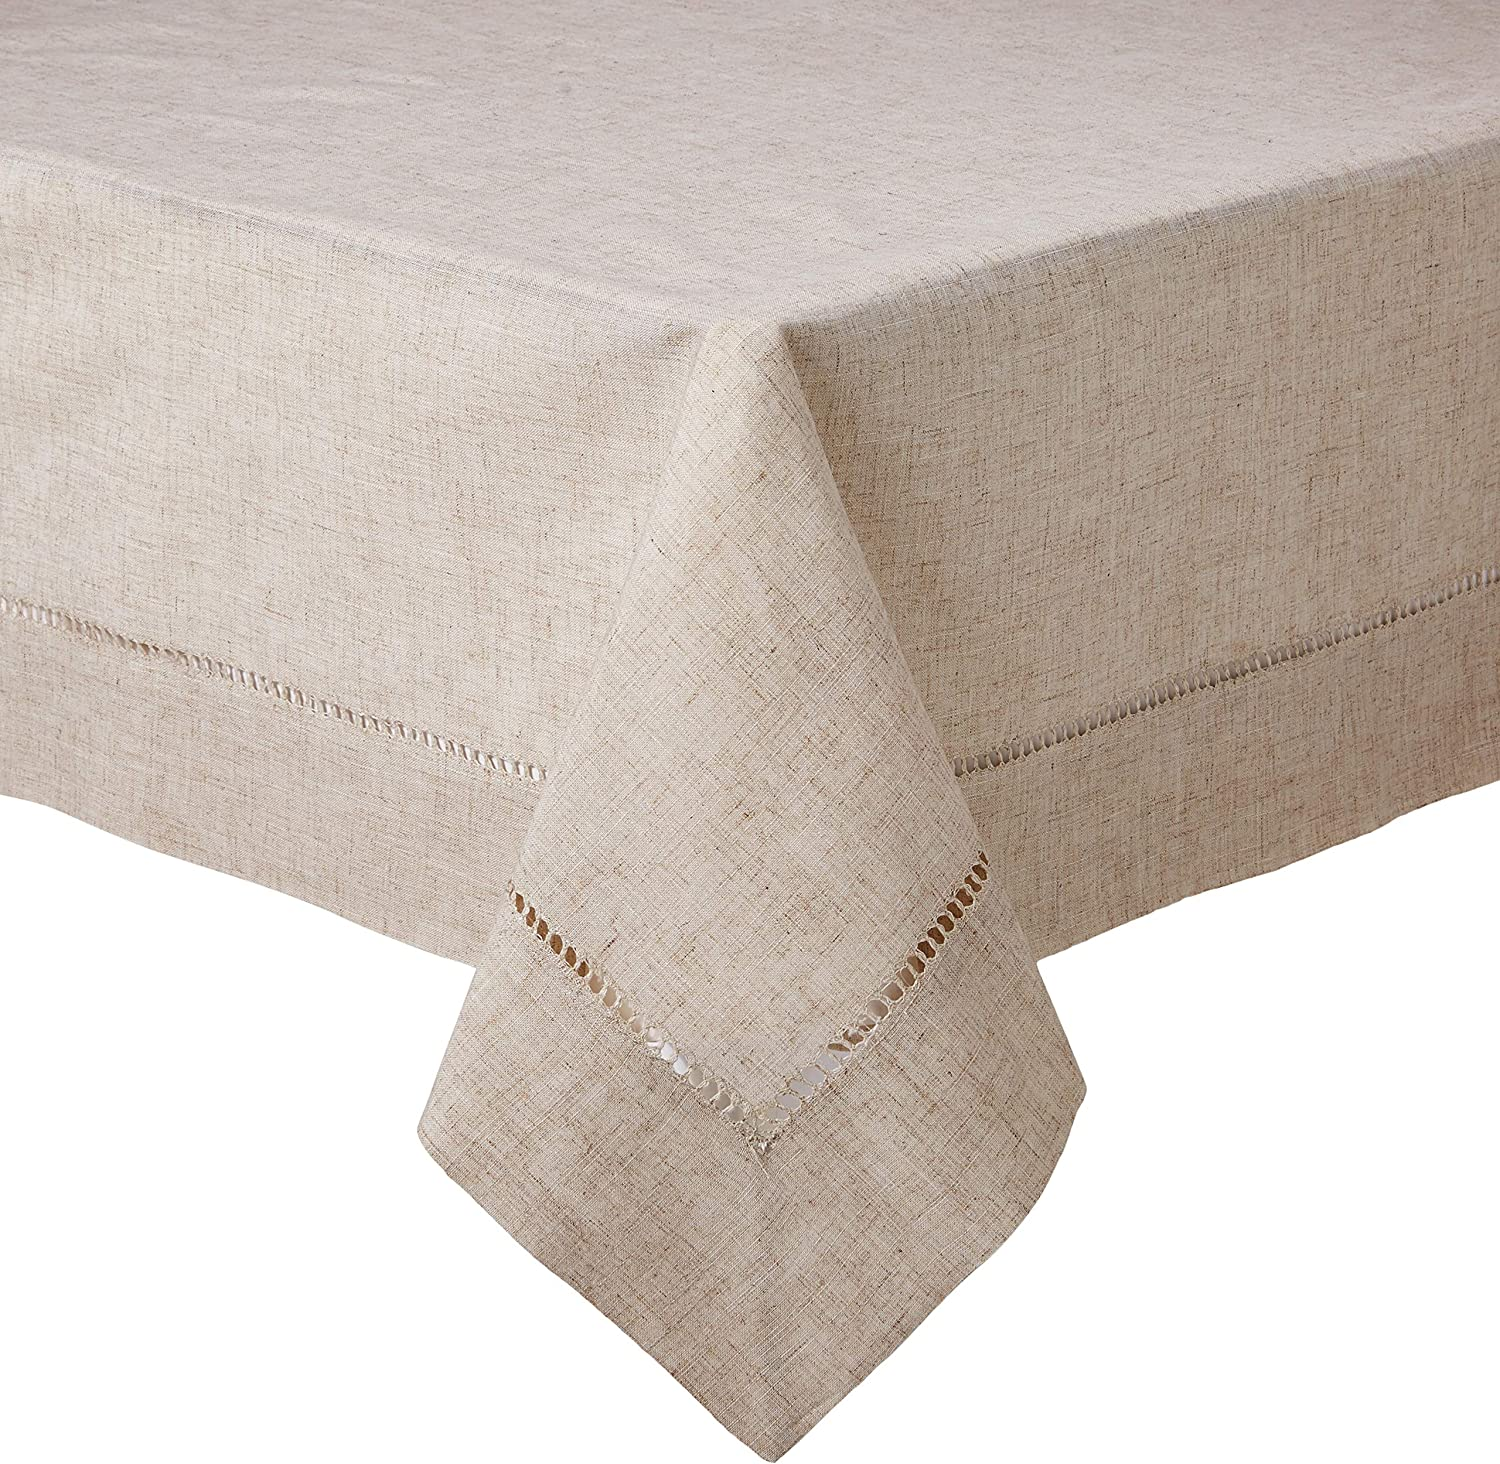 SARO LIFESTYLE 731.N60S (1 Piece) Toscana Square Tablecloth, 60 , Natural